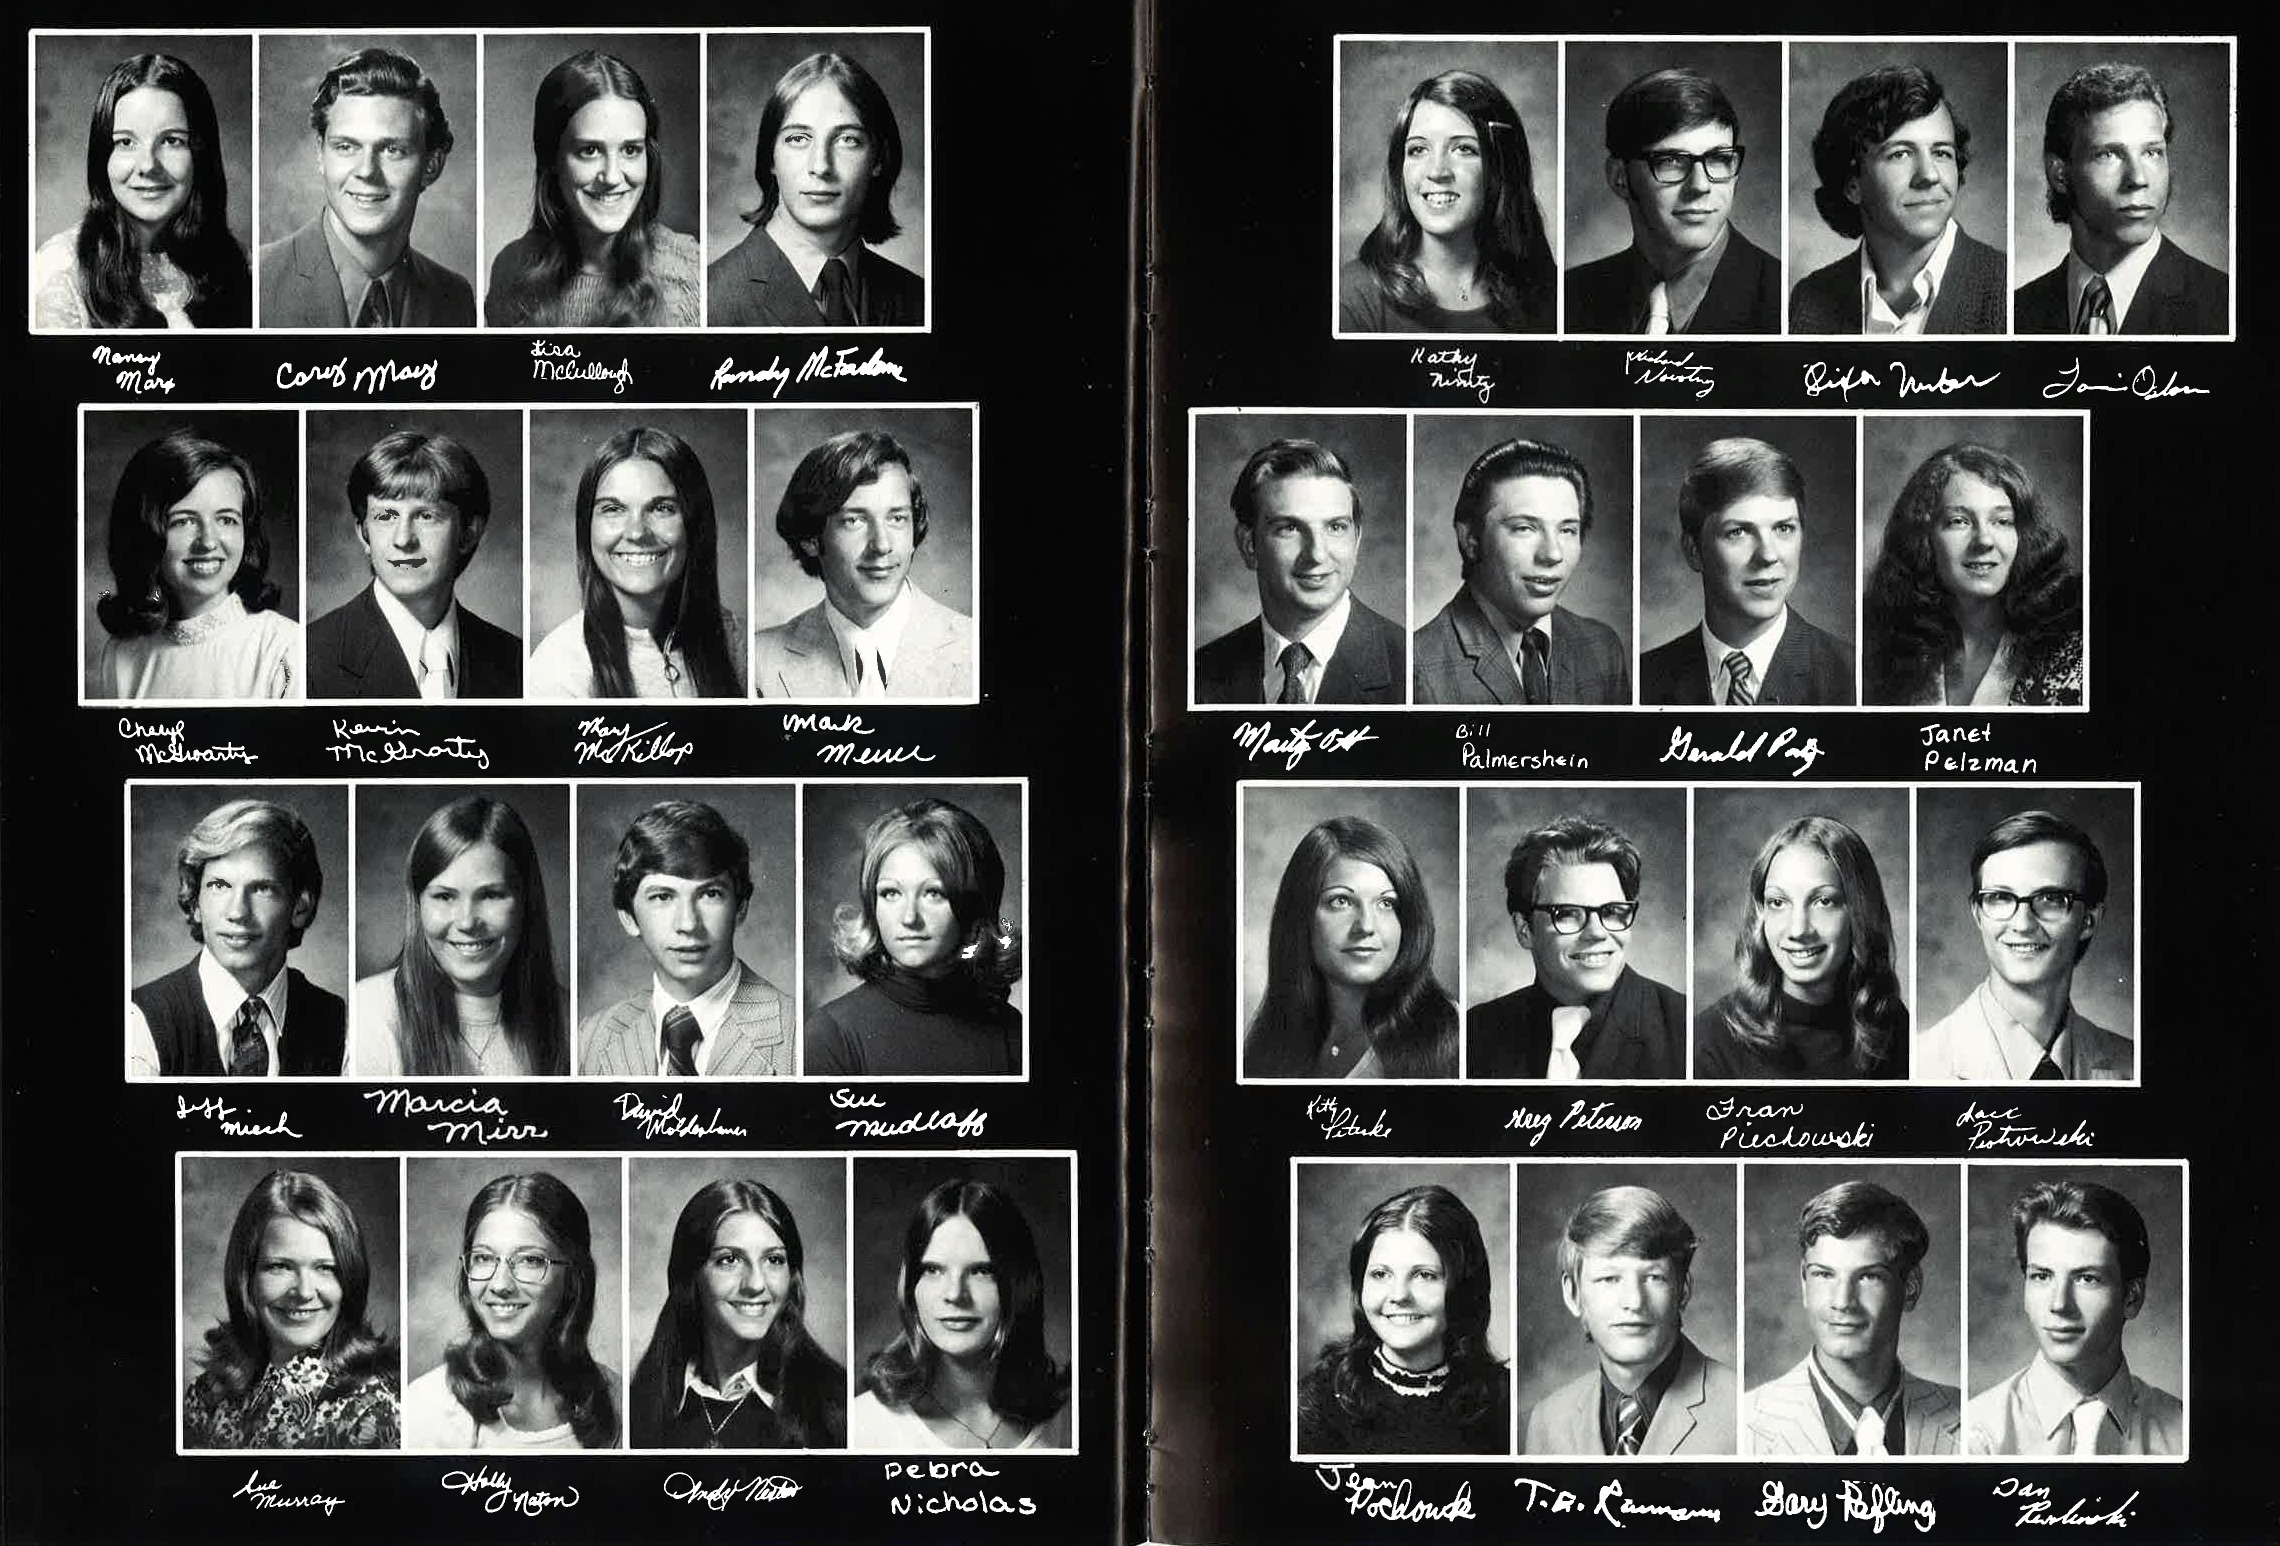 1973_Yearbook_68-69.jpg